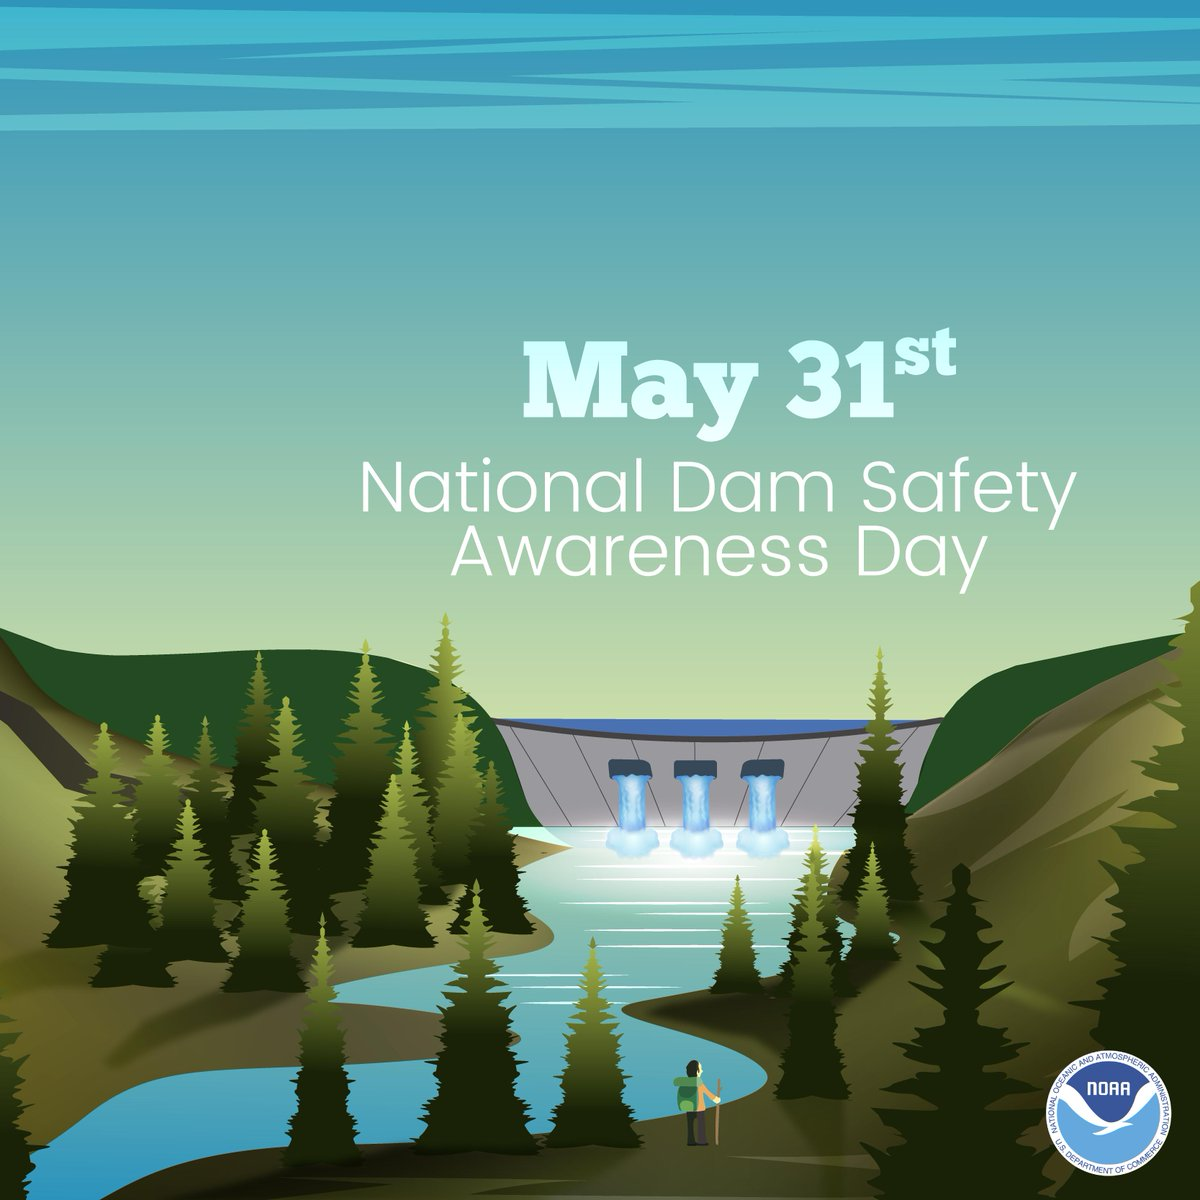 Today is National Dam Safety Awareness Day! If you live near or downstream of a dam, it's a good idea to know your risk. Check out https://damsafety.org/NDSAD to learn more. #DamSafetyDay